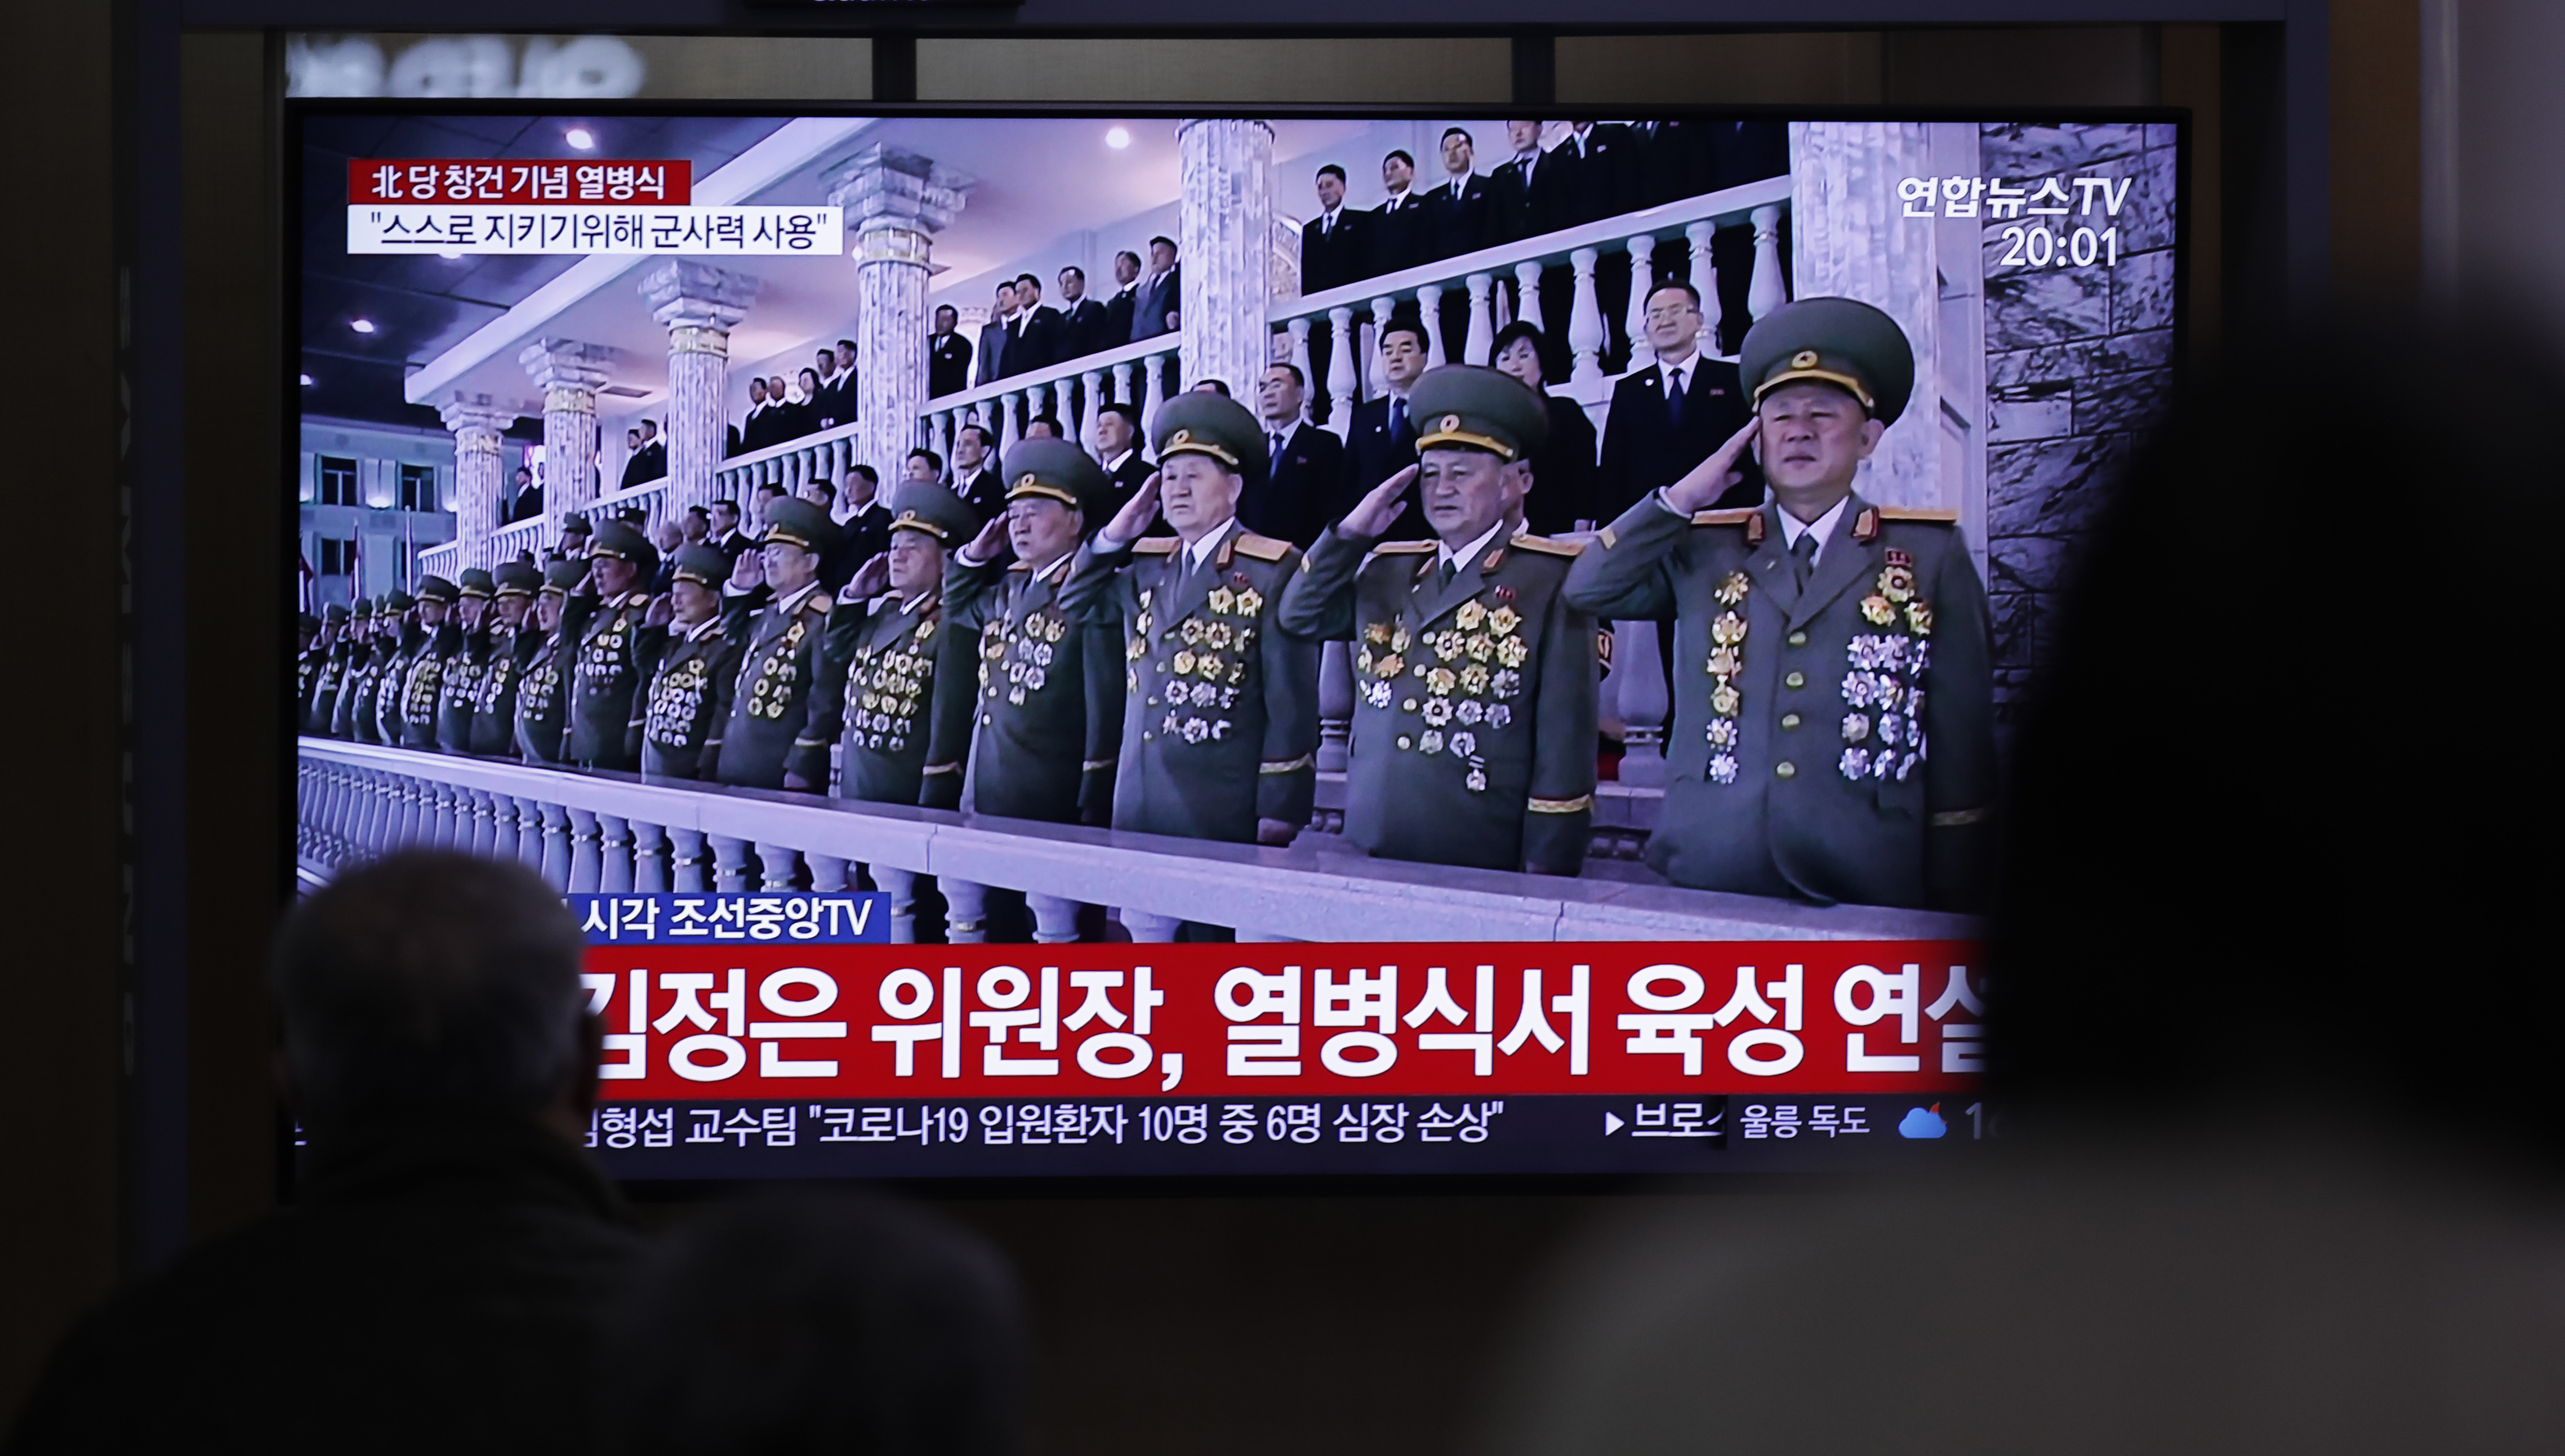 North Korea celebrating the ruling Workers' party. A part of letters read: